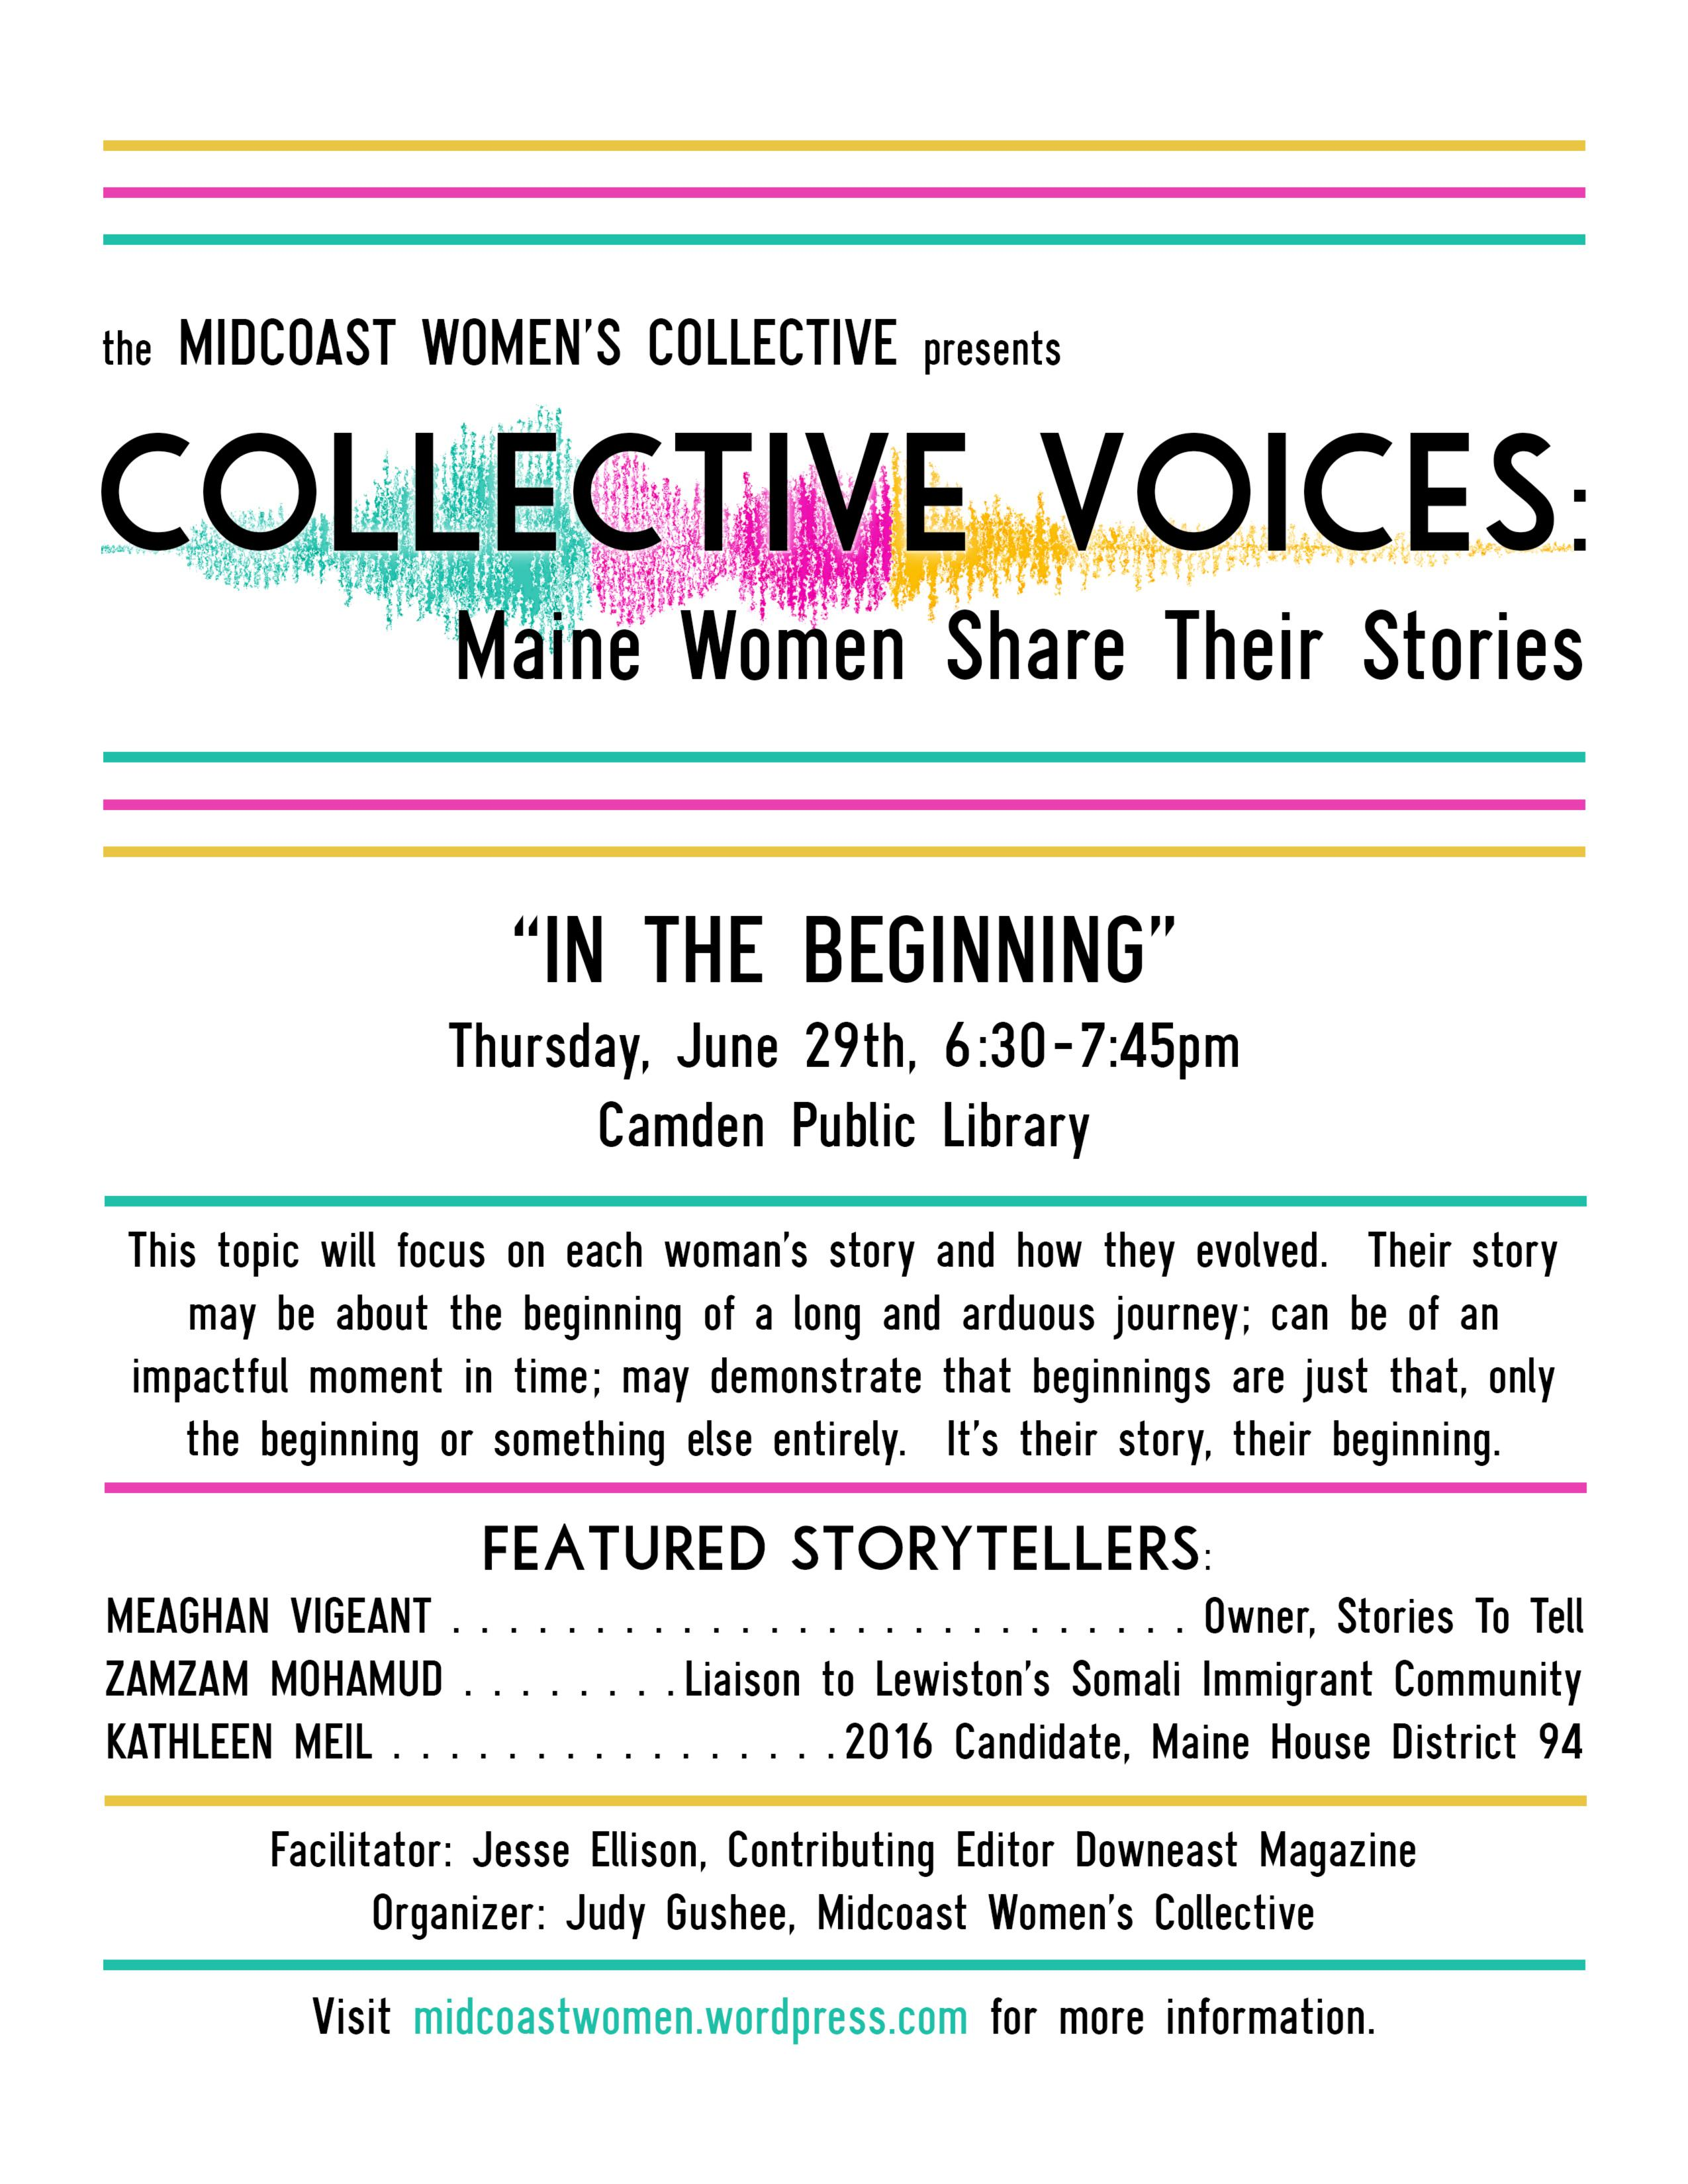 Midcoast Women's Collective Storytelling Event | Camden